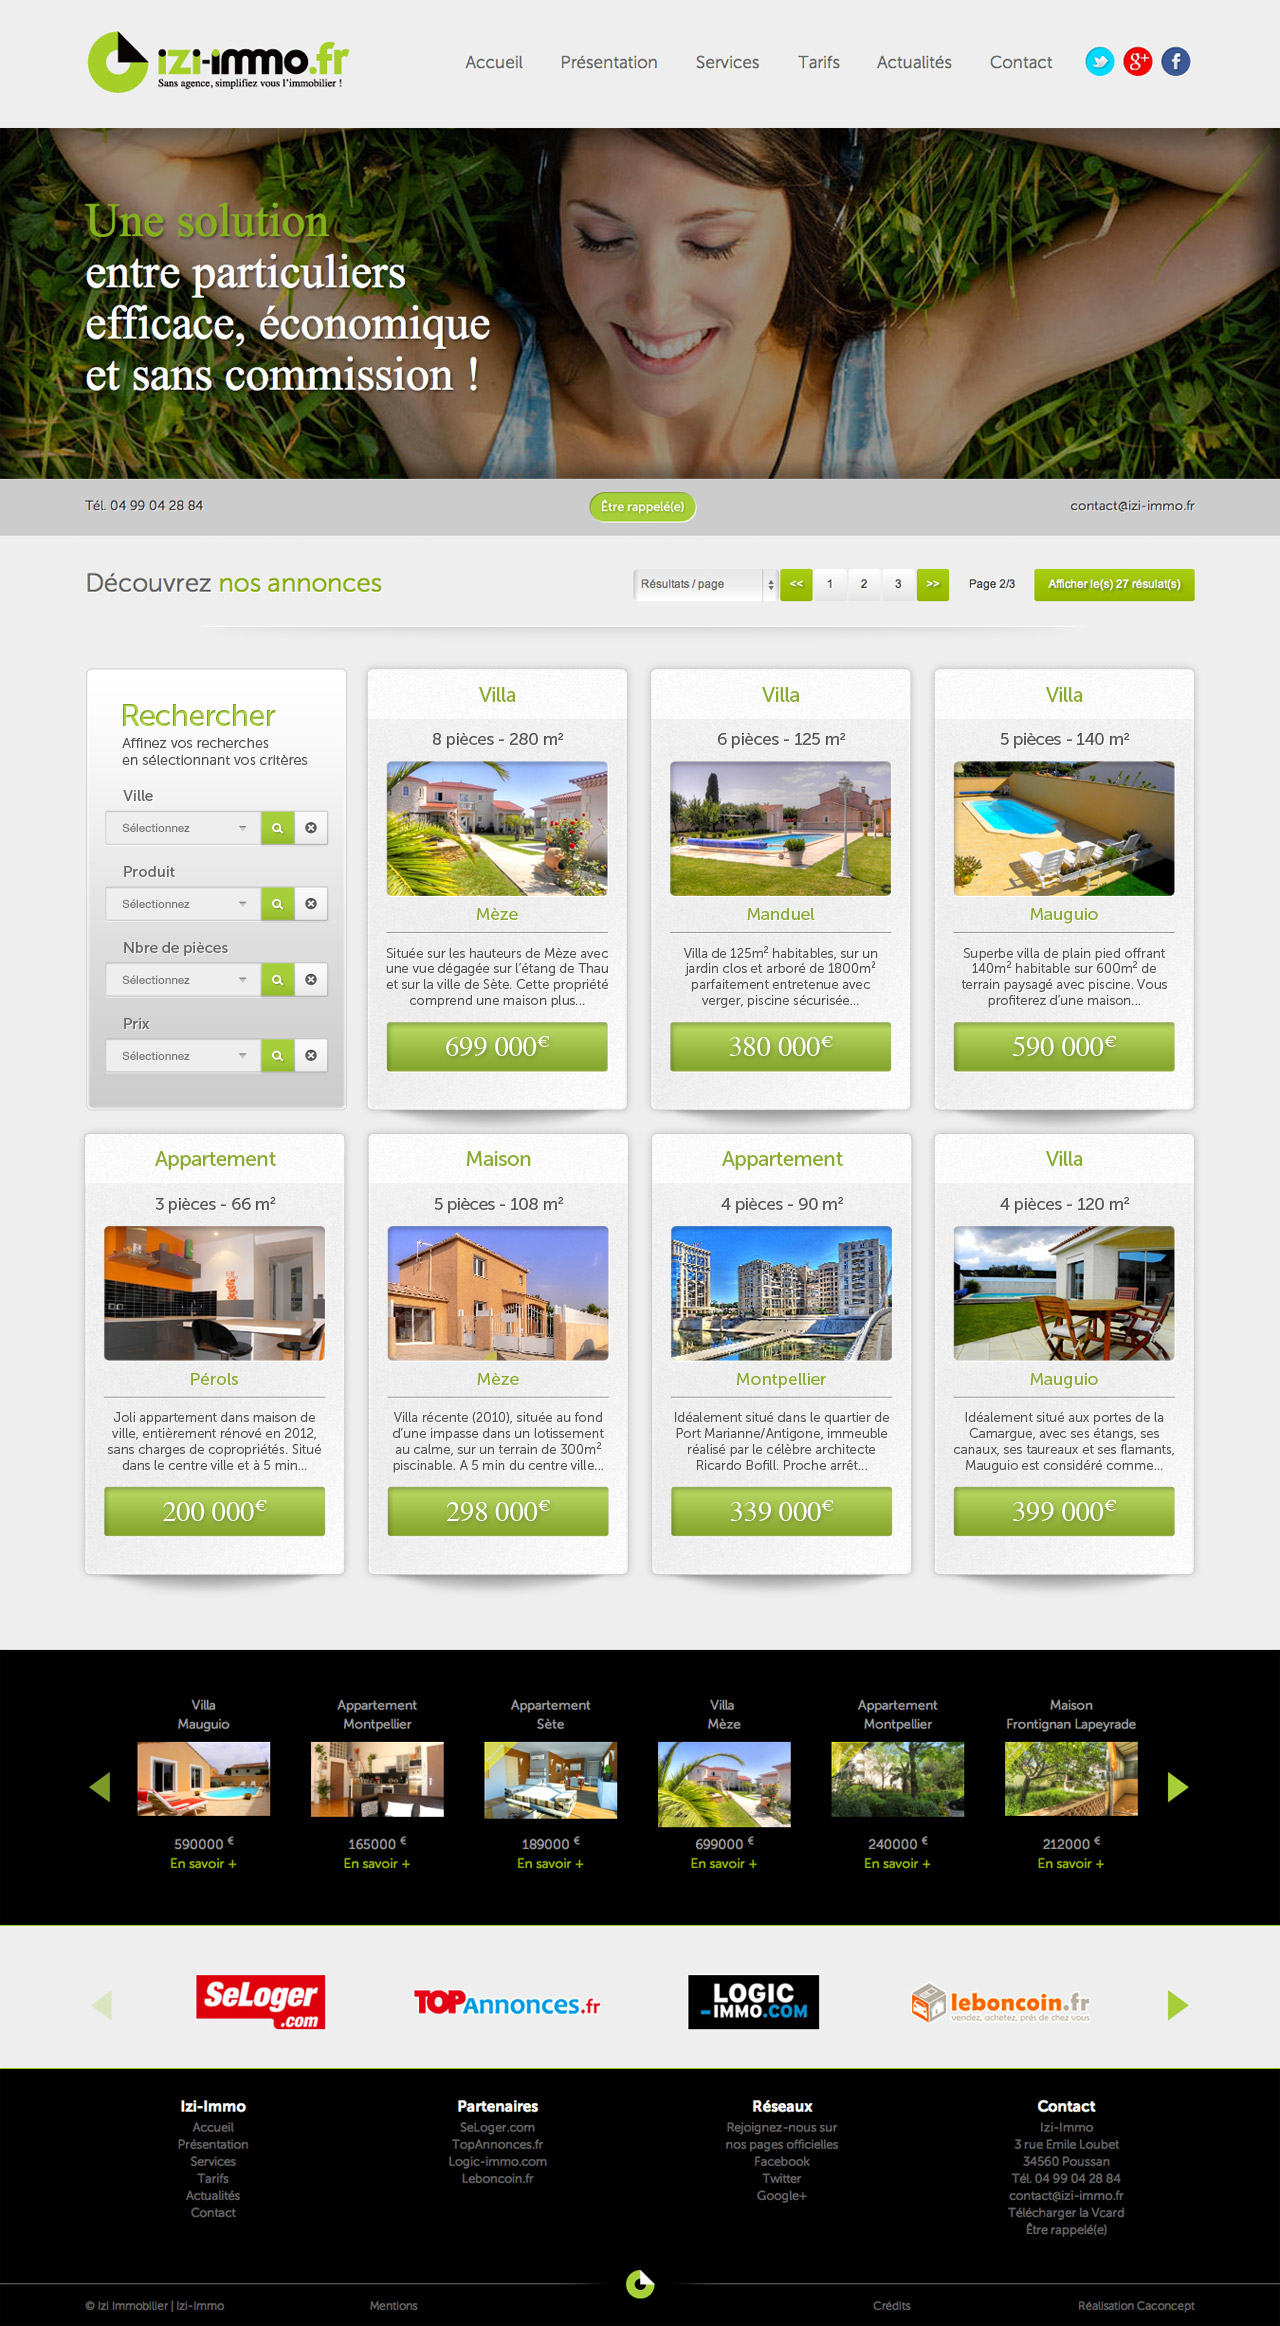 izi-immobilier-site-internet-annonces-creation-communication-caconcept-alexis-cretin-graphiste